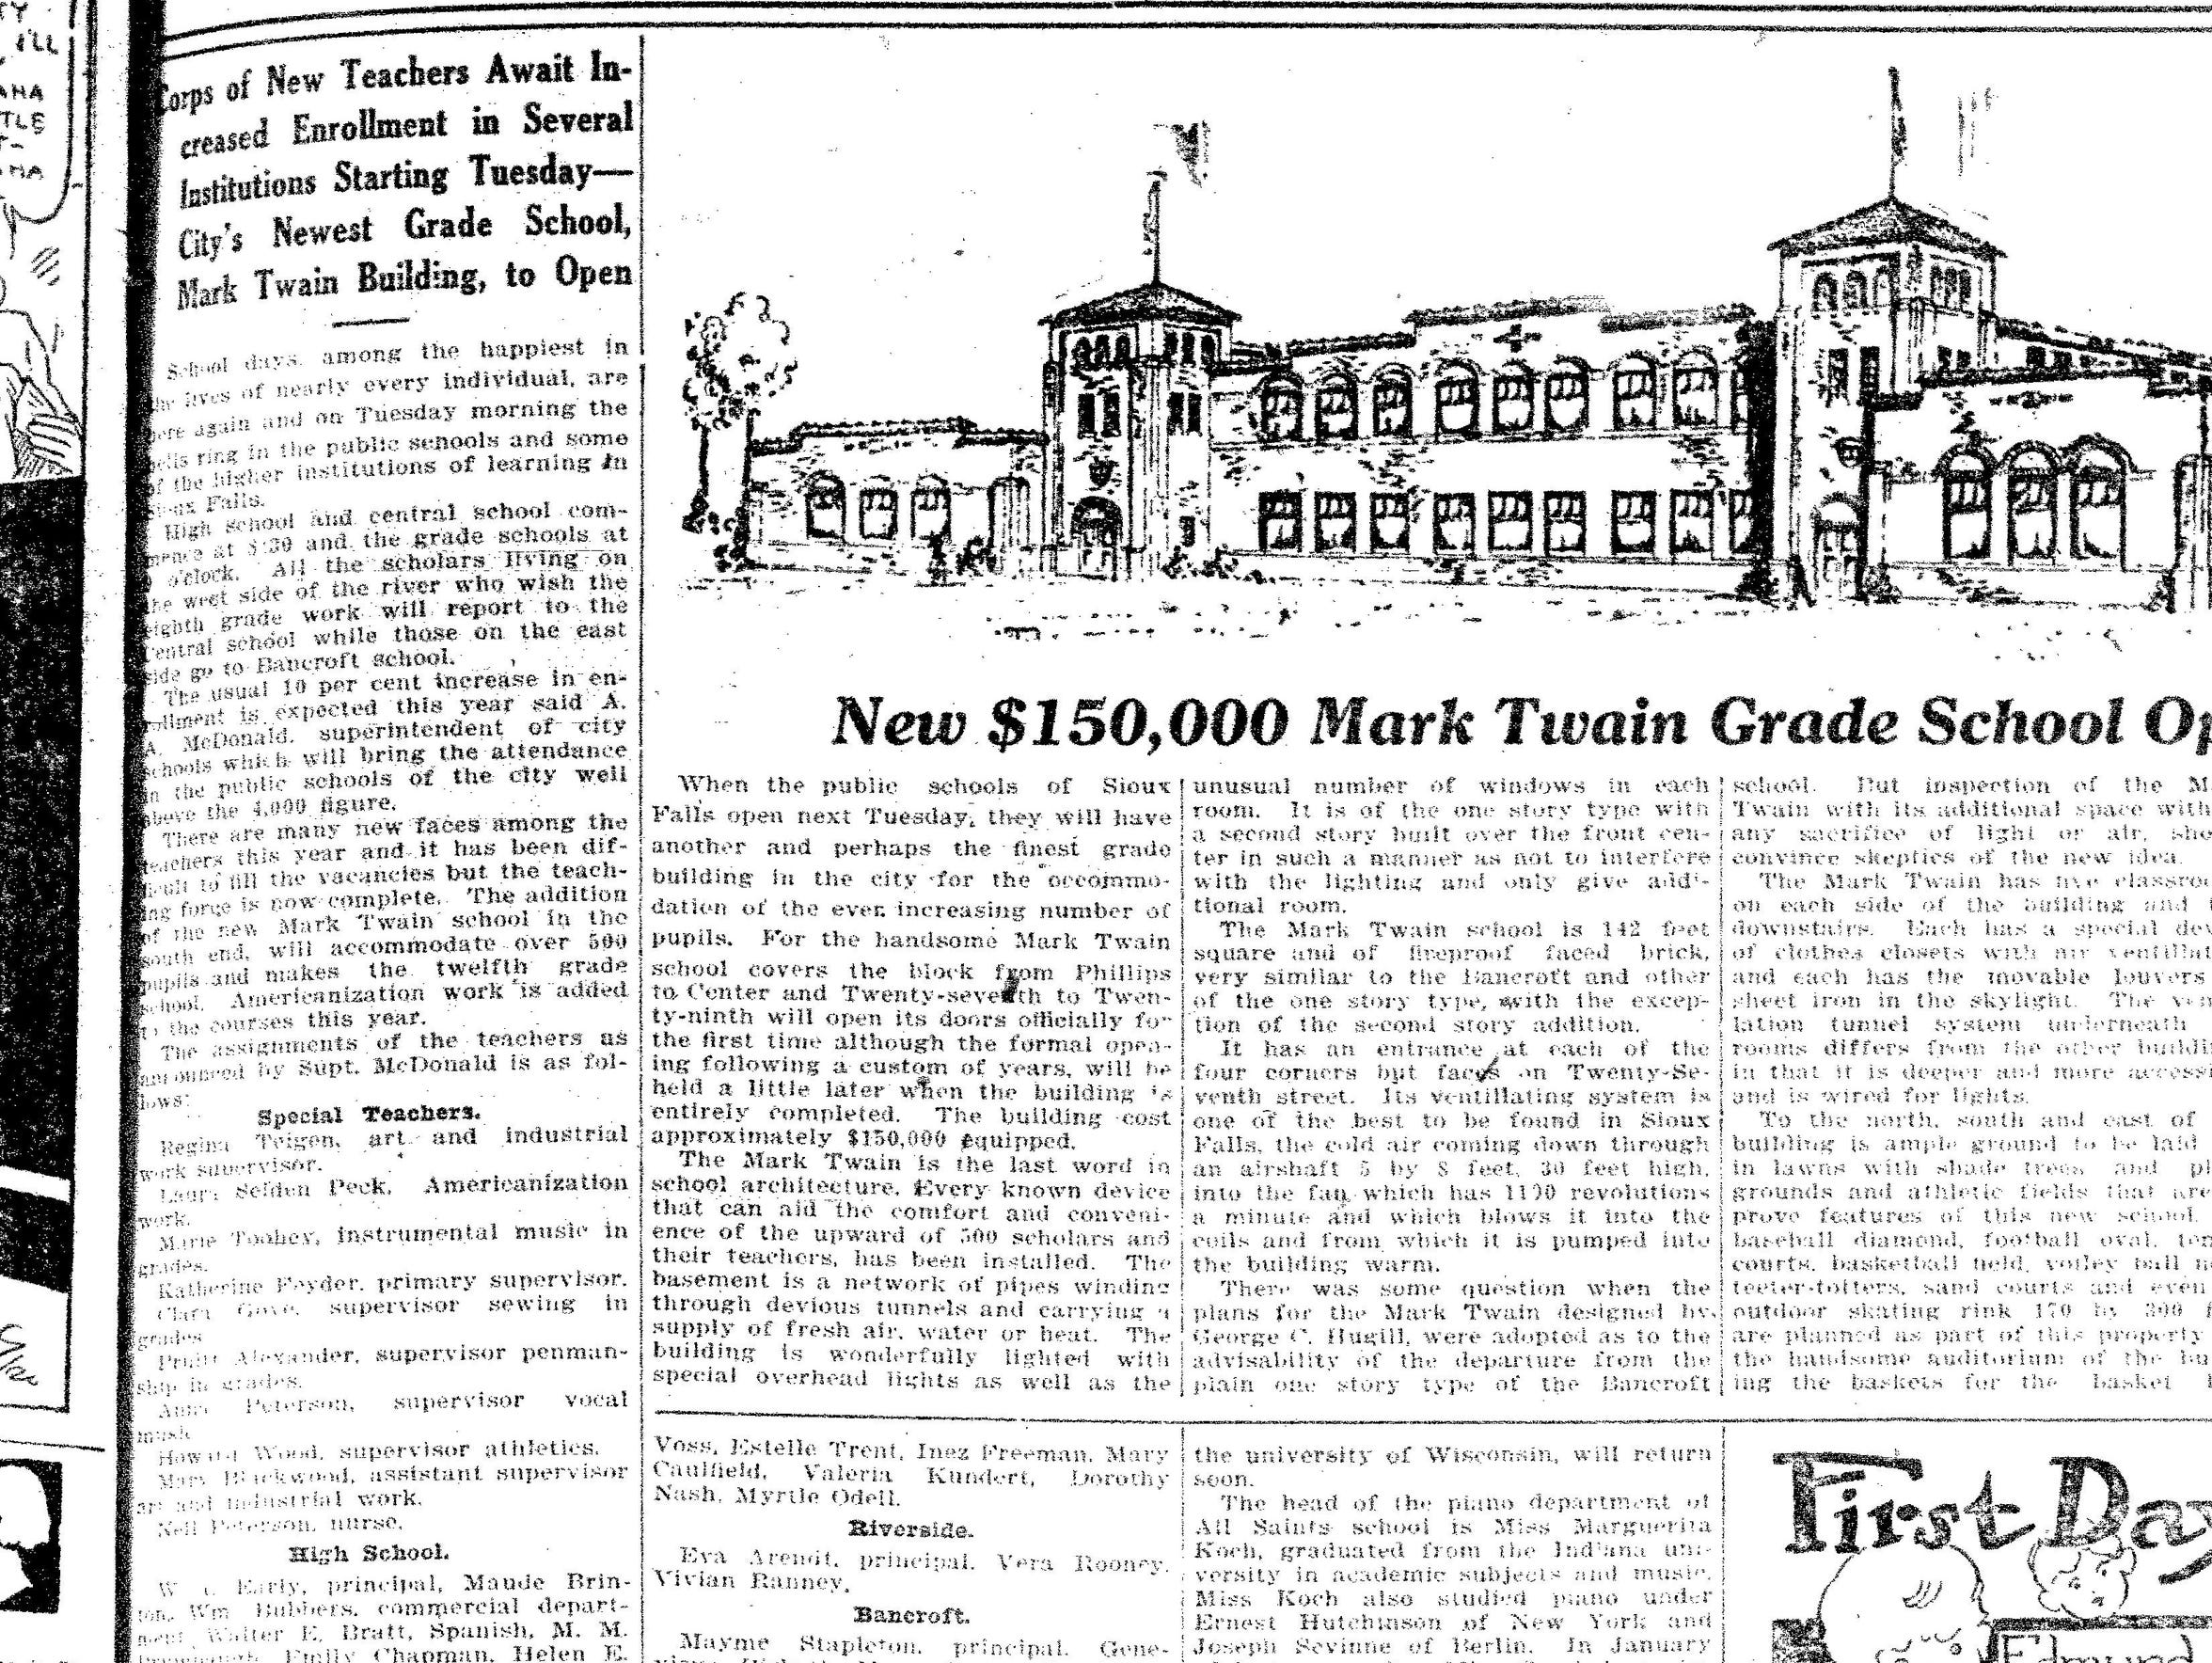 An Argus Leader newspaper clipping from the opening